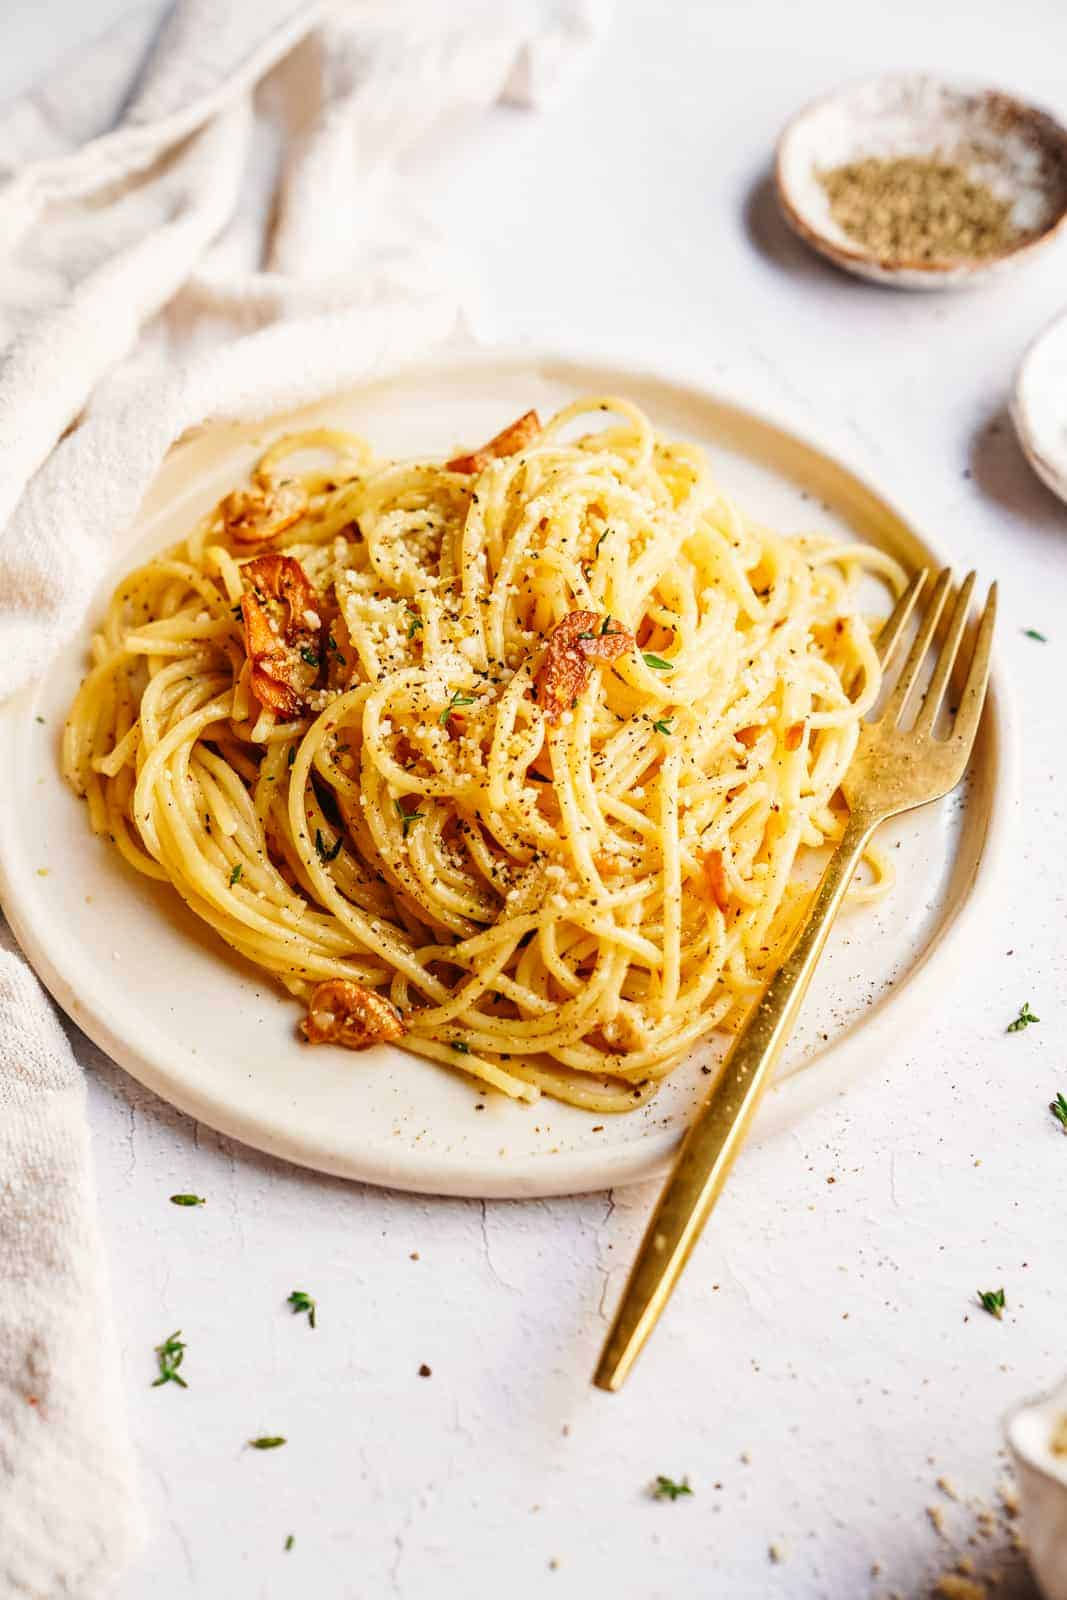 Spaghetti with Oil and Garlic